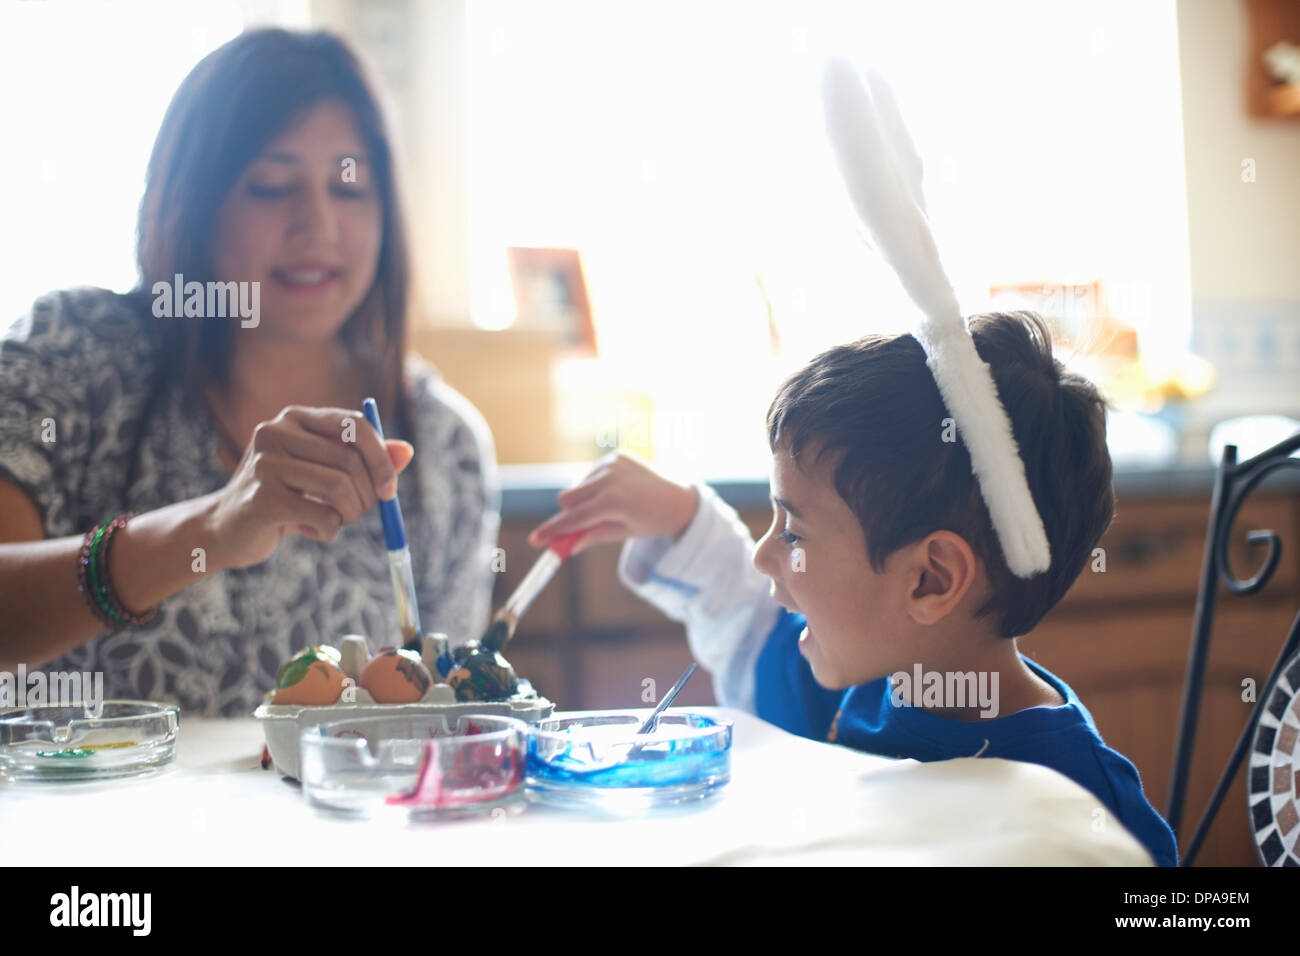 Woman and boy wearing bunny ears painting Easter eggs - Stock Image